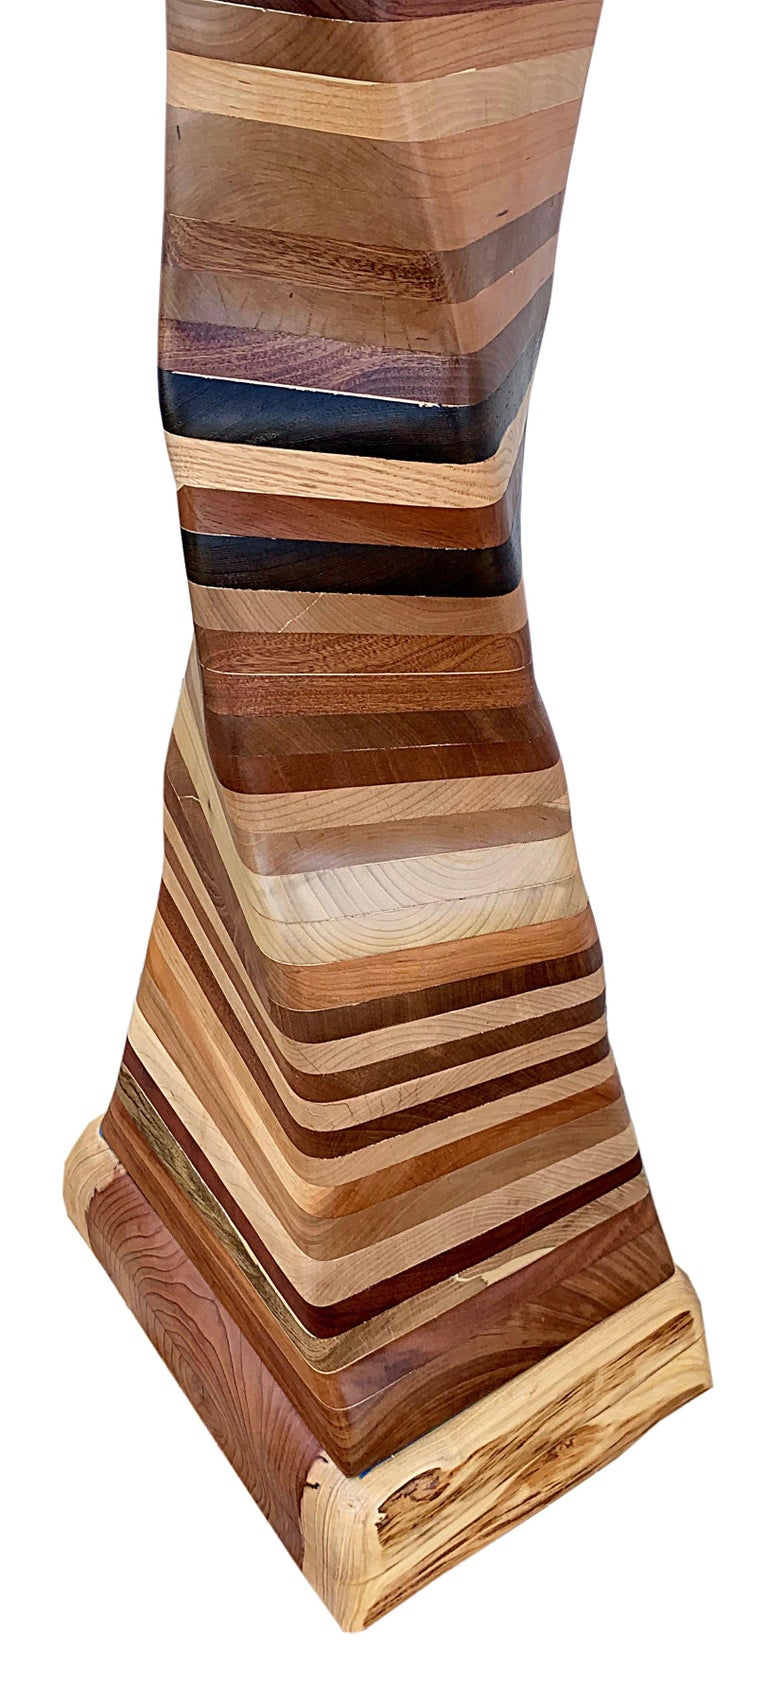 Undulating Wood Sculpture, Untitled 2019 - Brown Abstract Sculpture by Ben Darby